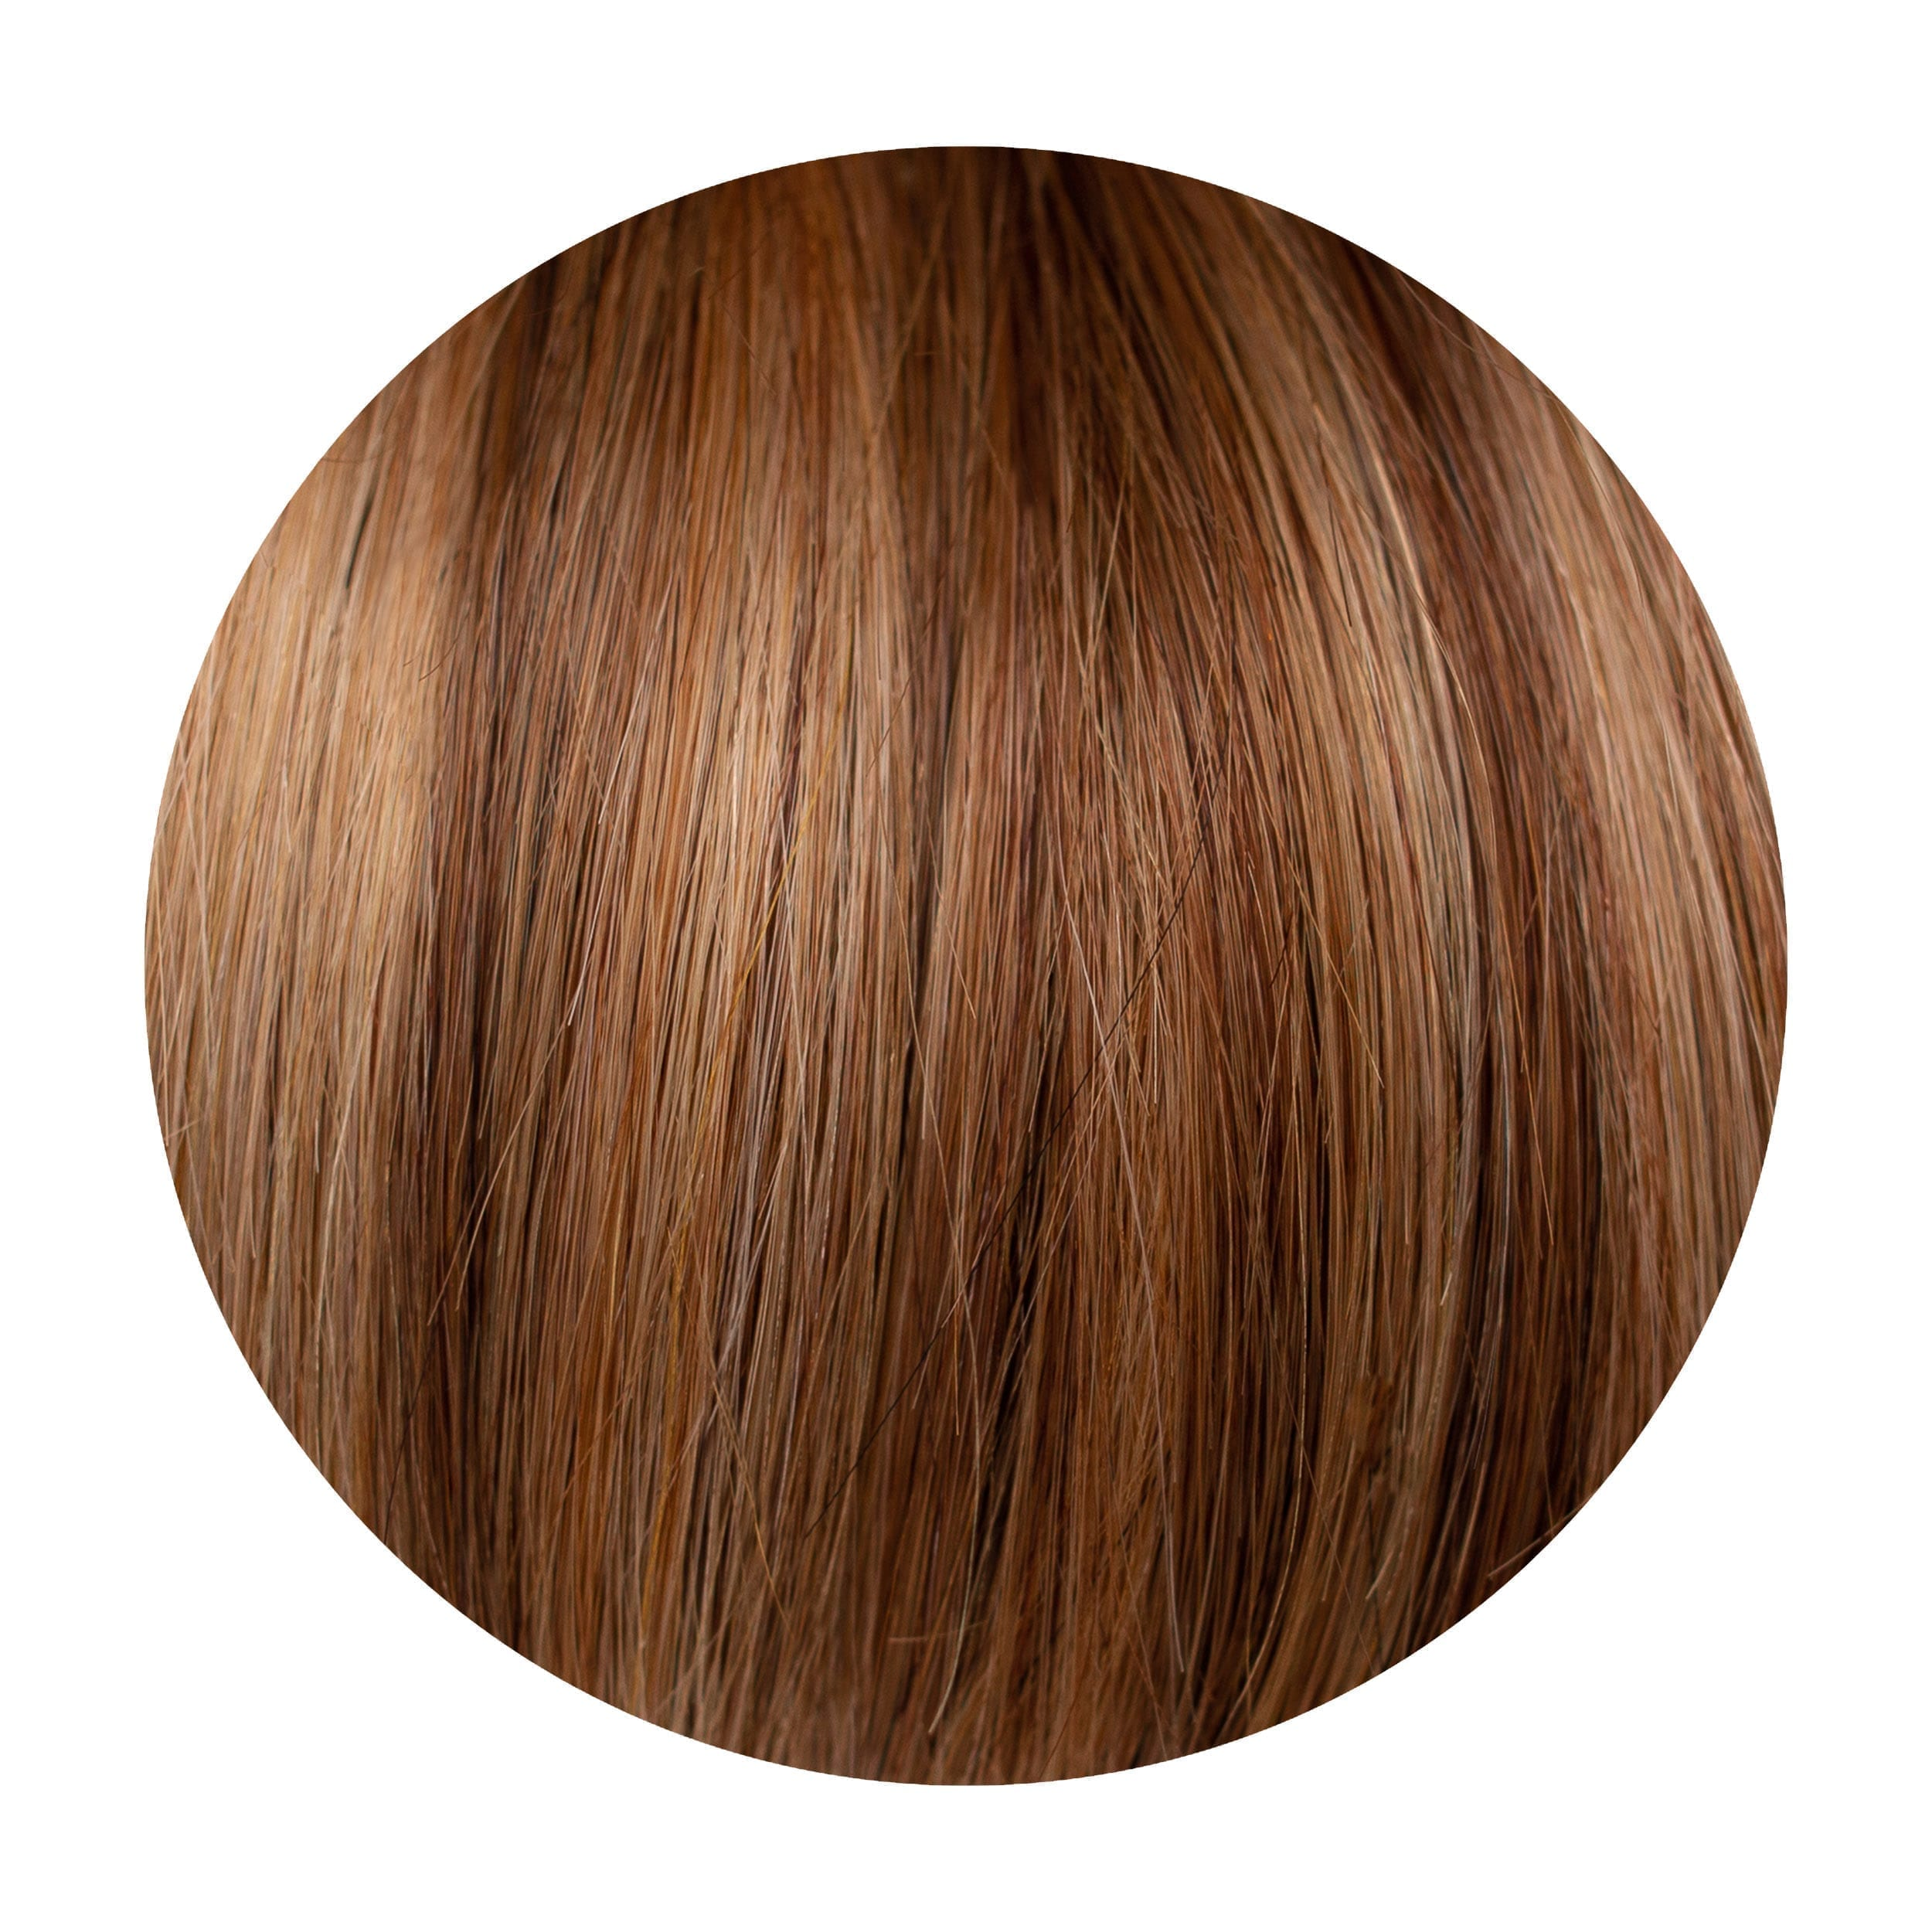 Caramel Blend Piano Colour Human Hair Extensions Clip in 5 Piece